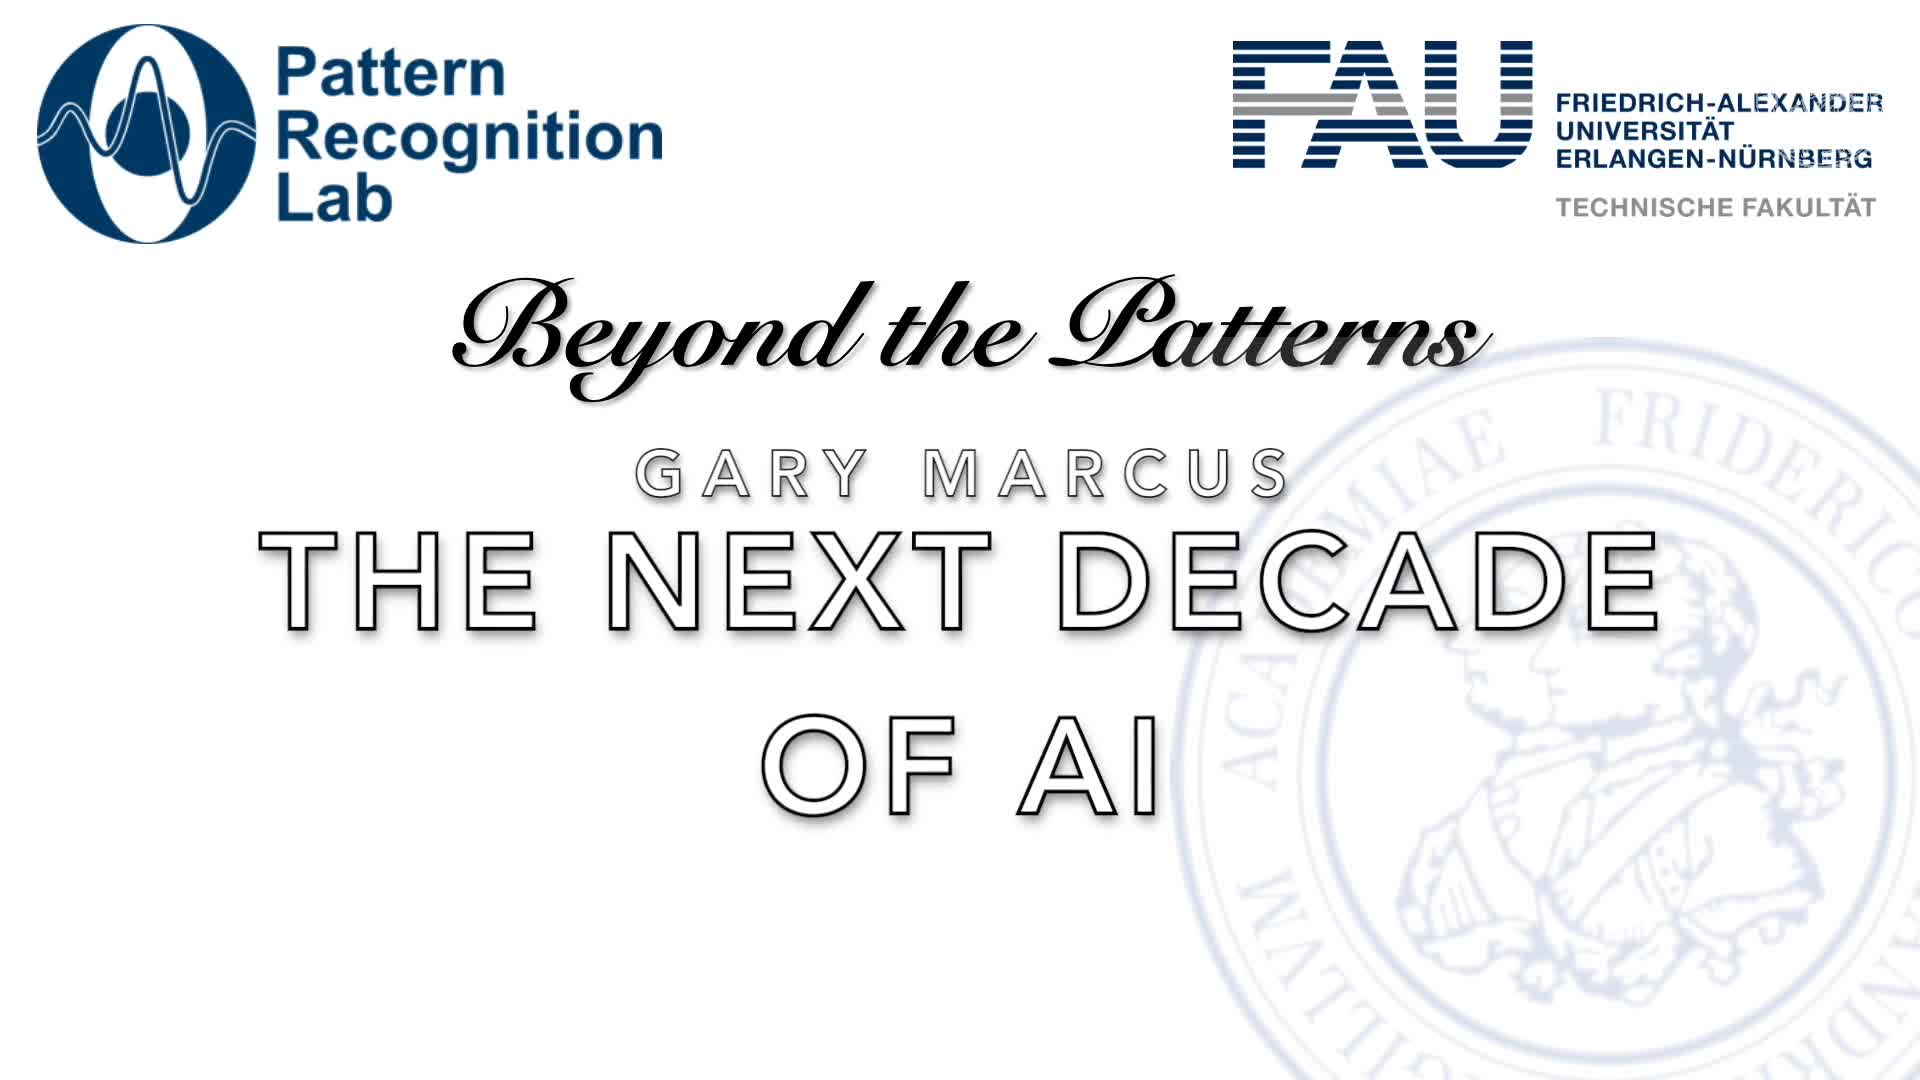 Beyond the Patterns - Gary Marcus - The Next Decade in AI preview image